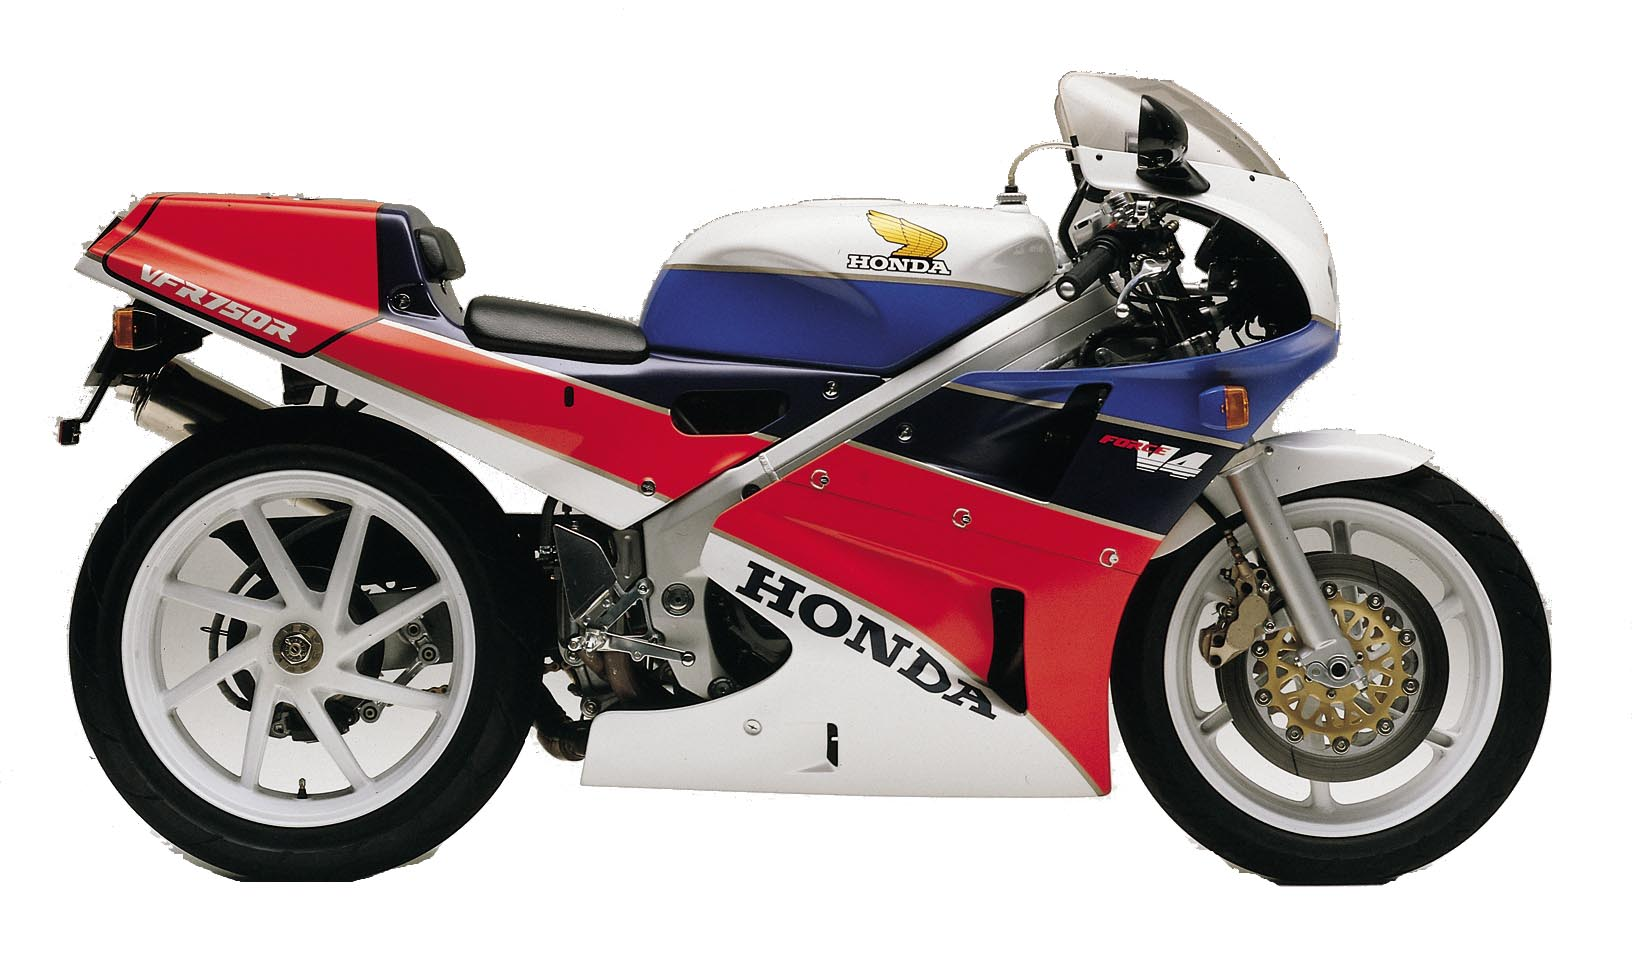 The 10 best sounding bikes of all time